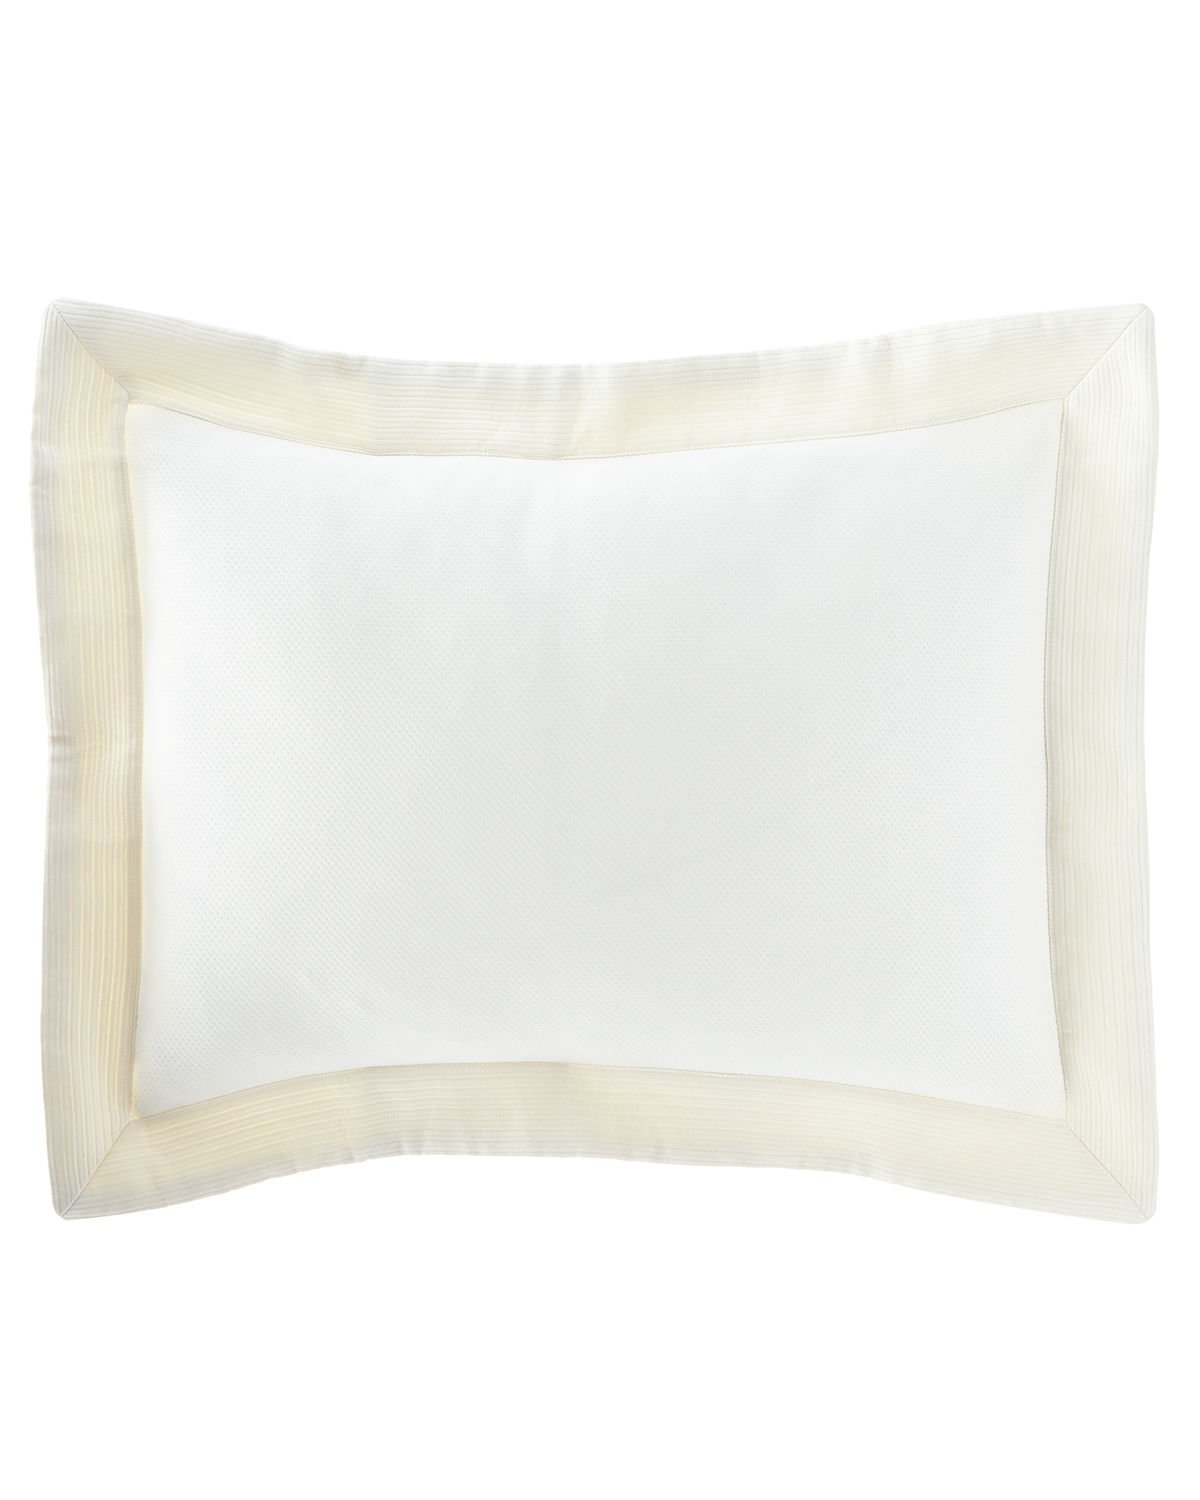 Peacock Alley Angelina Shams in Pearl Color (King Size)